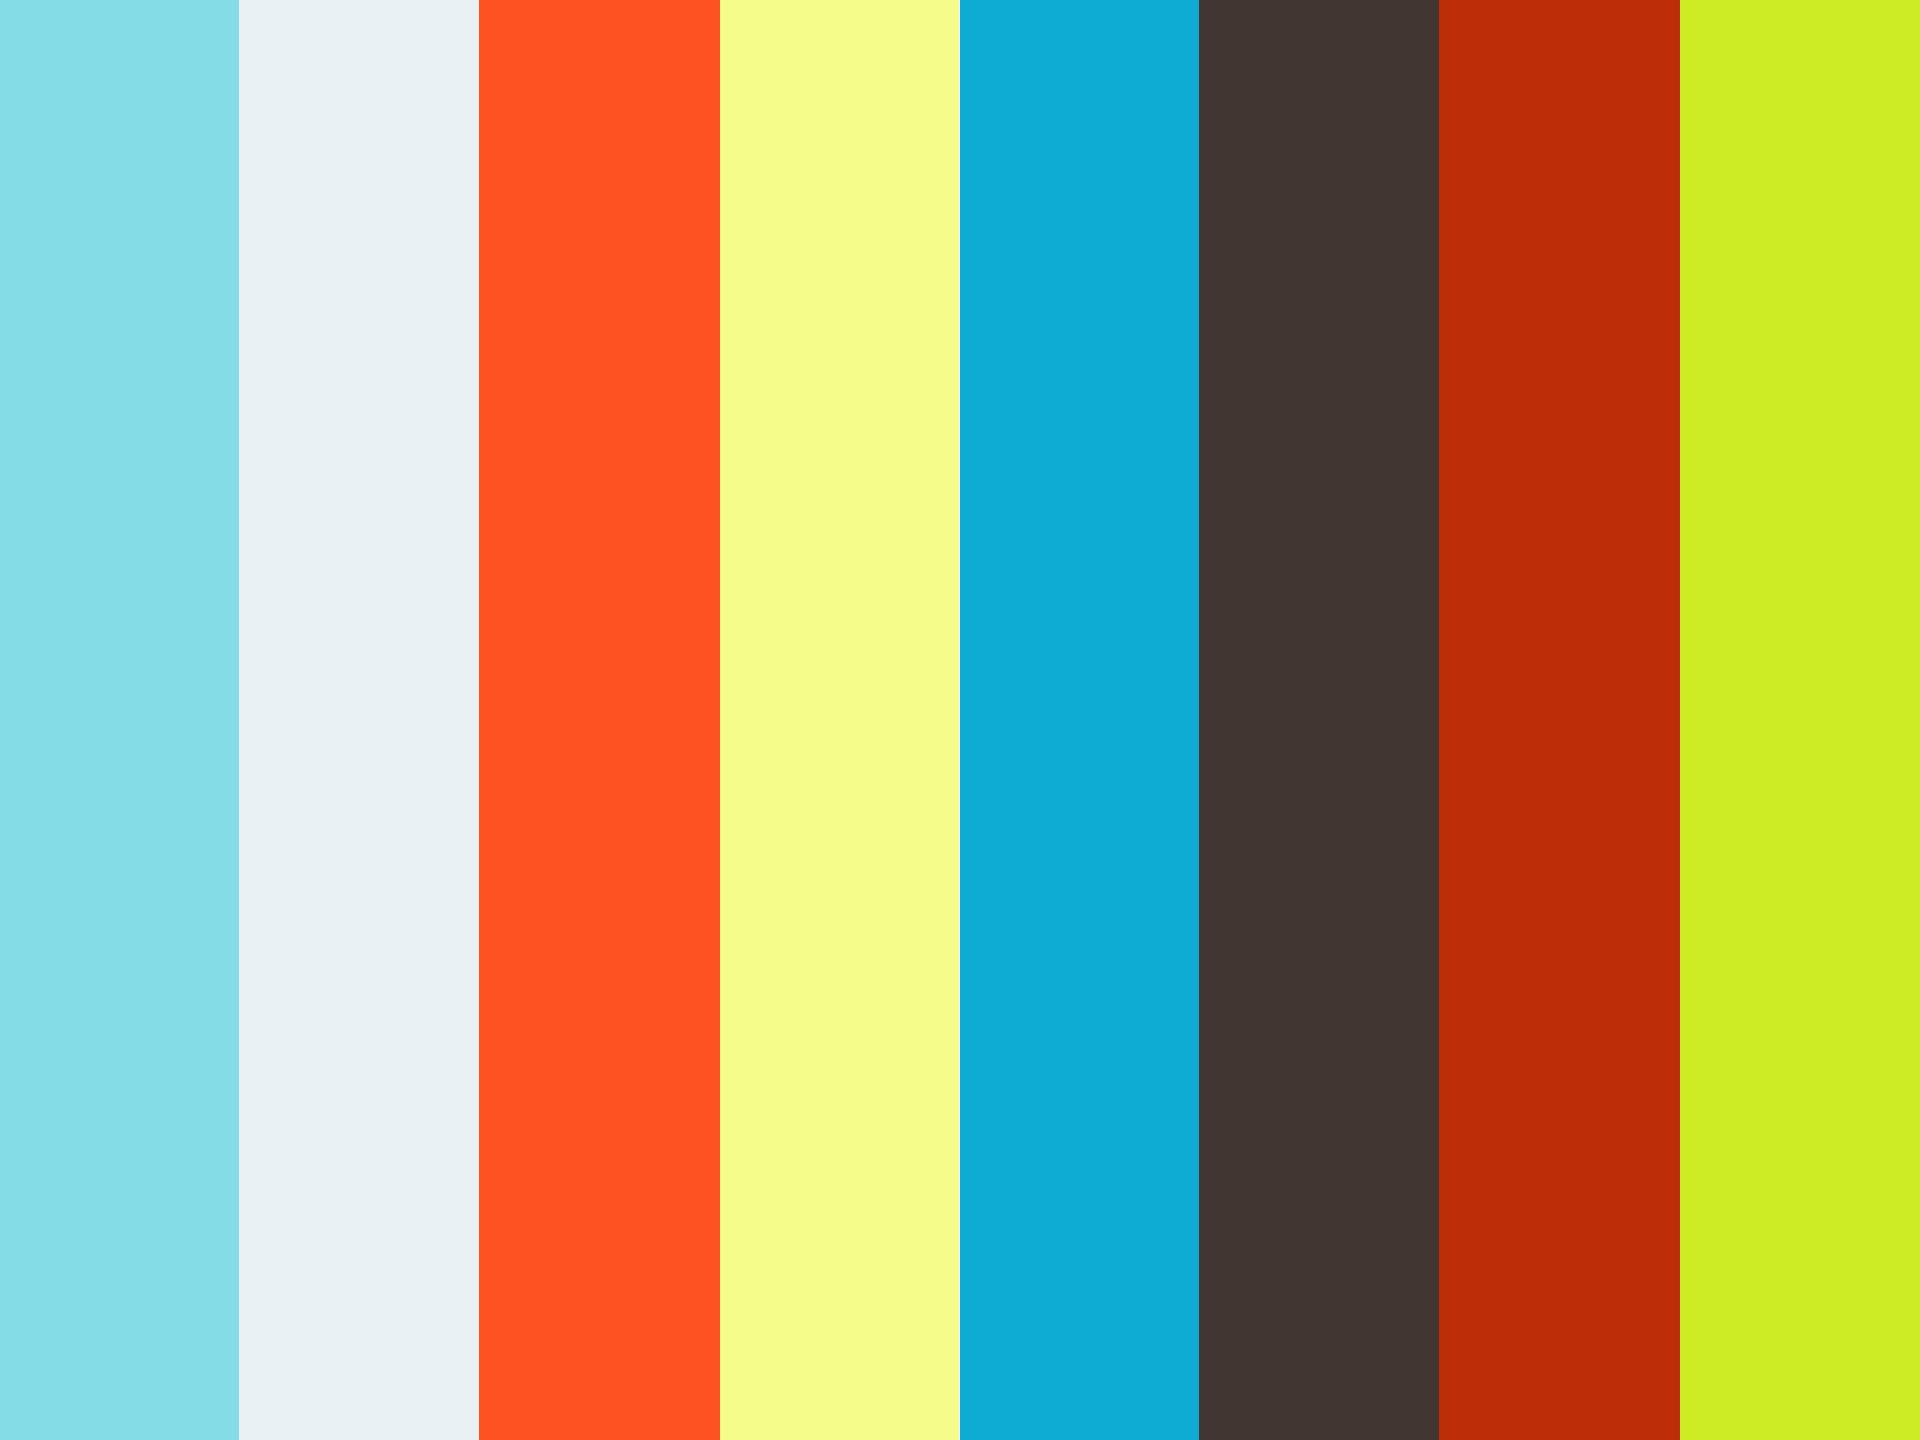 Francesco tristano stattbad wedding